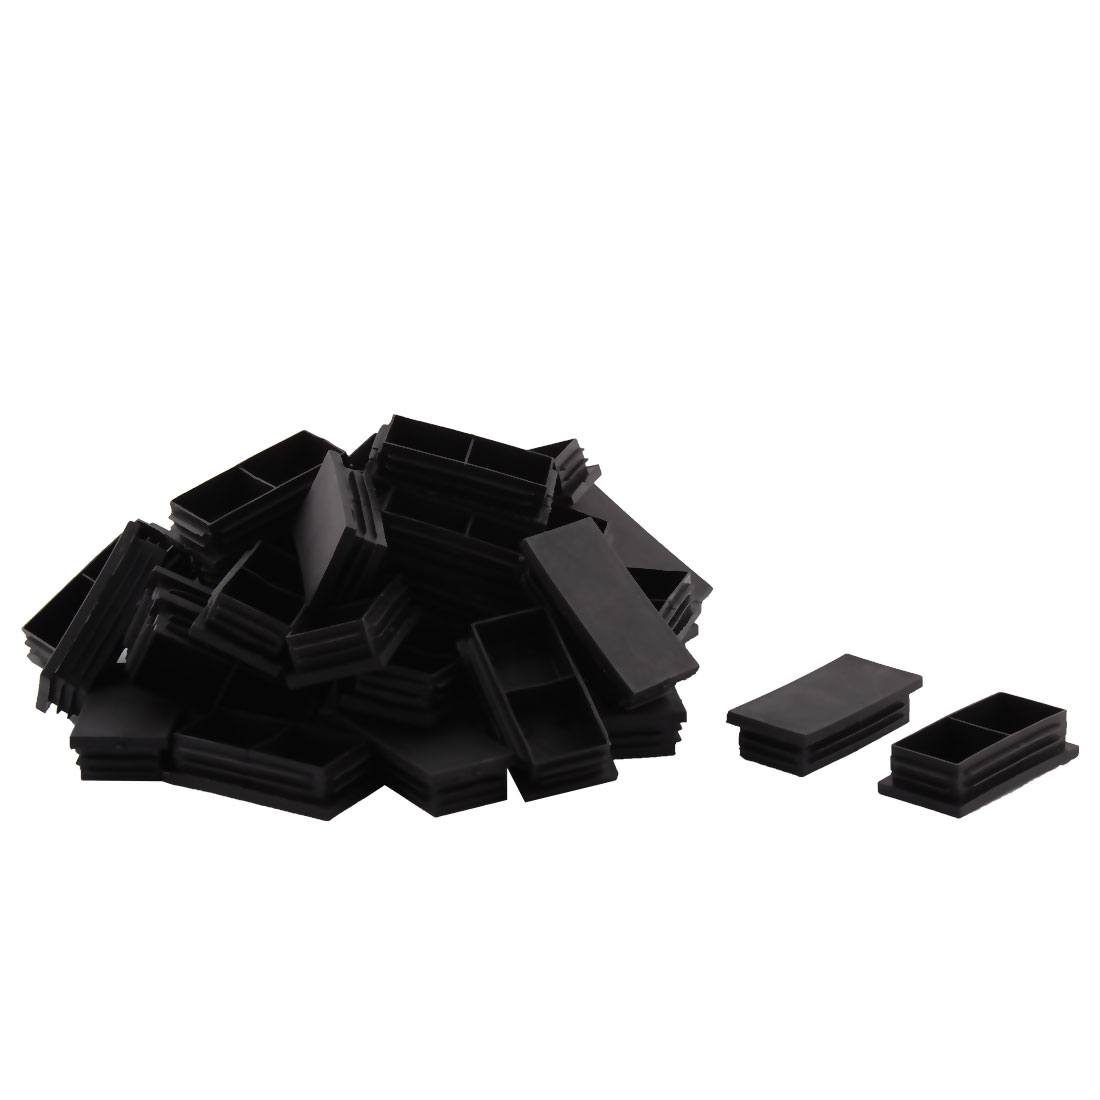 Plastic Rectangle Two Compartments Table Chair Leg Feet Tubing Tube Insert Caps Covers Black 80 x 40mm 40pcs